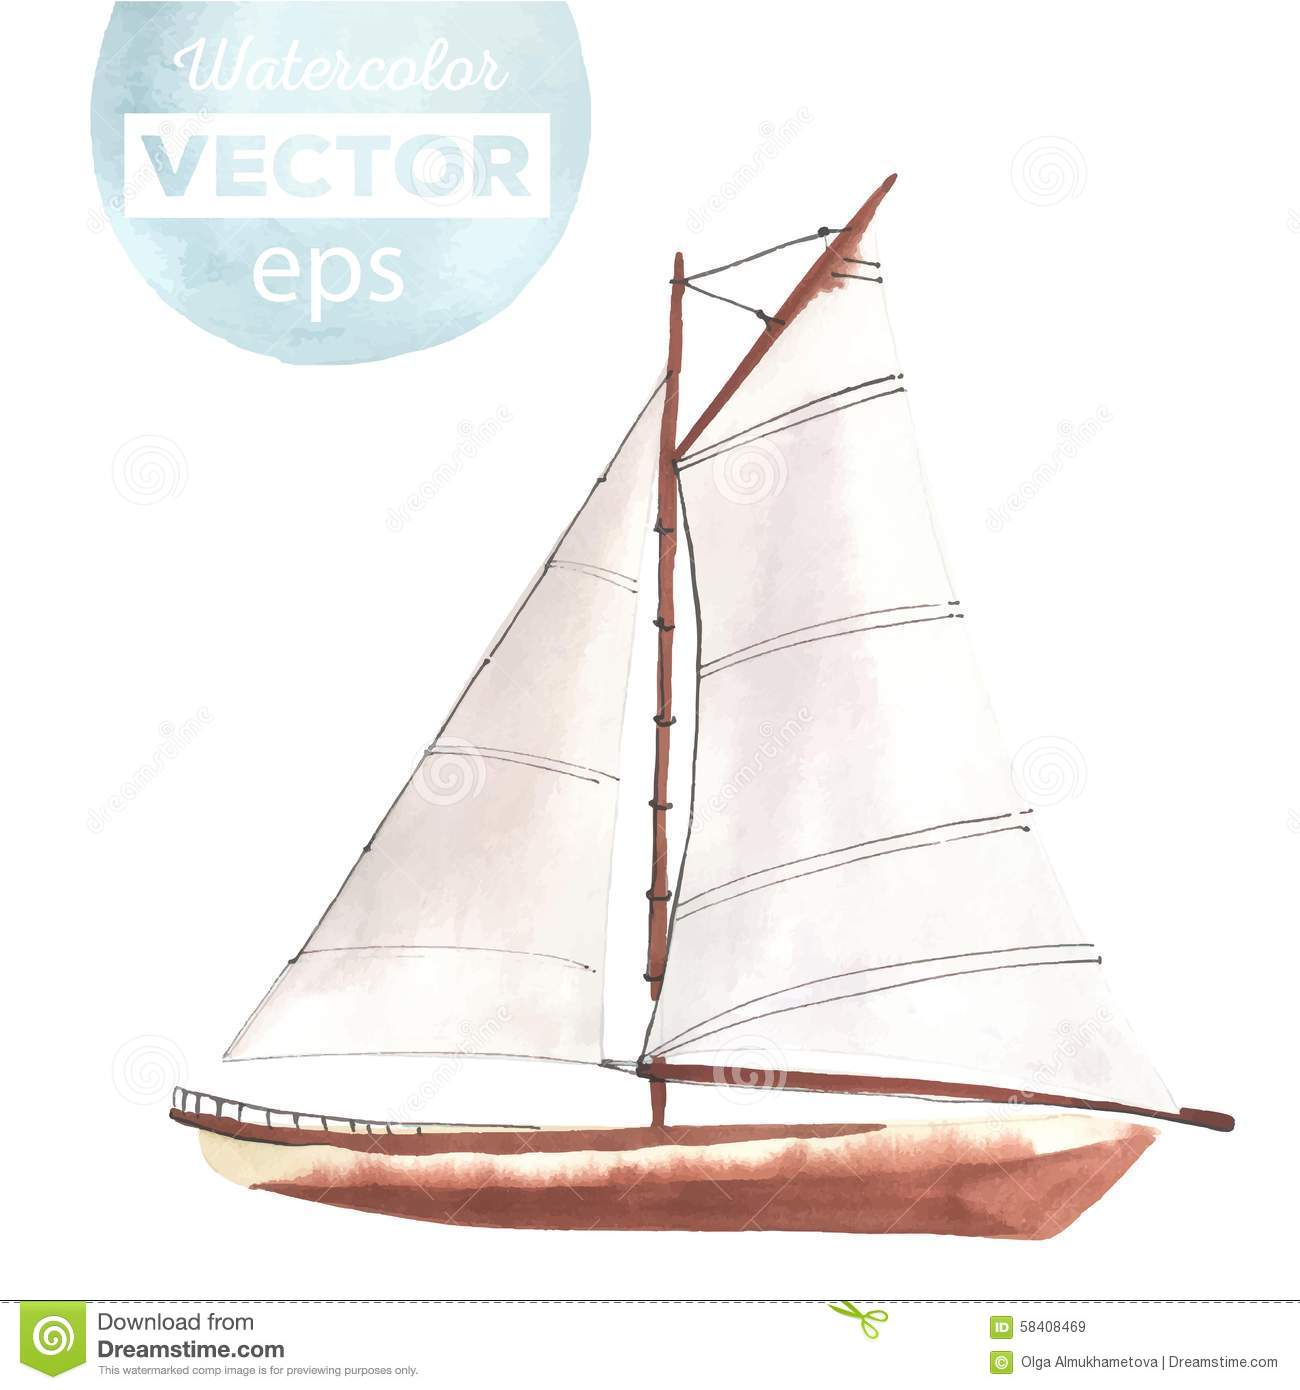 Watercolor Boat With Sails Stock Vector - Image: 58408469